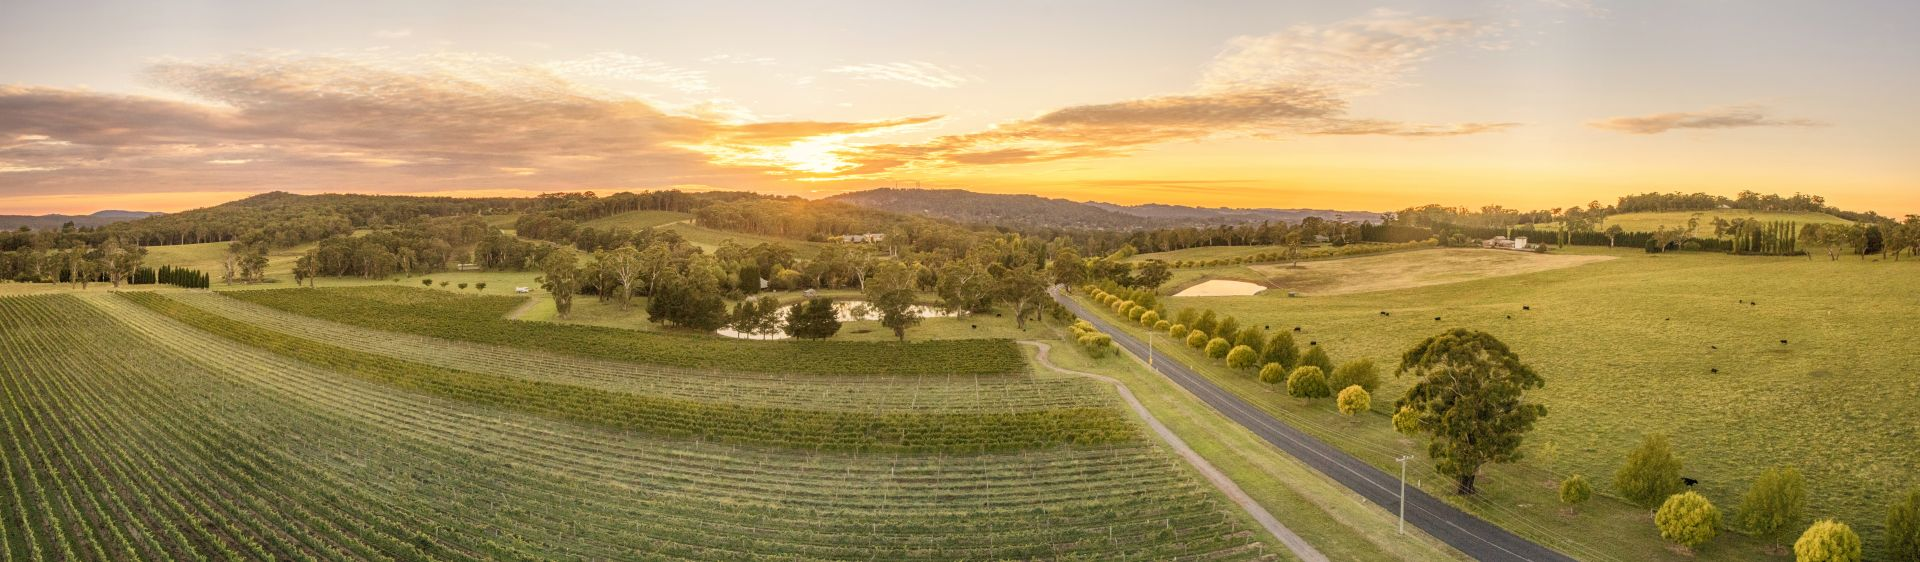 Centennial Vineyards, Bowral in the Southern Highlands region